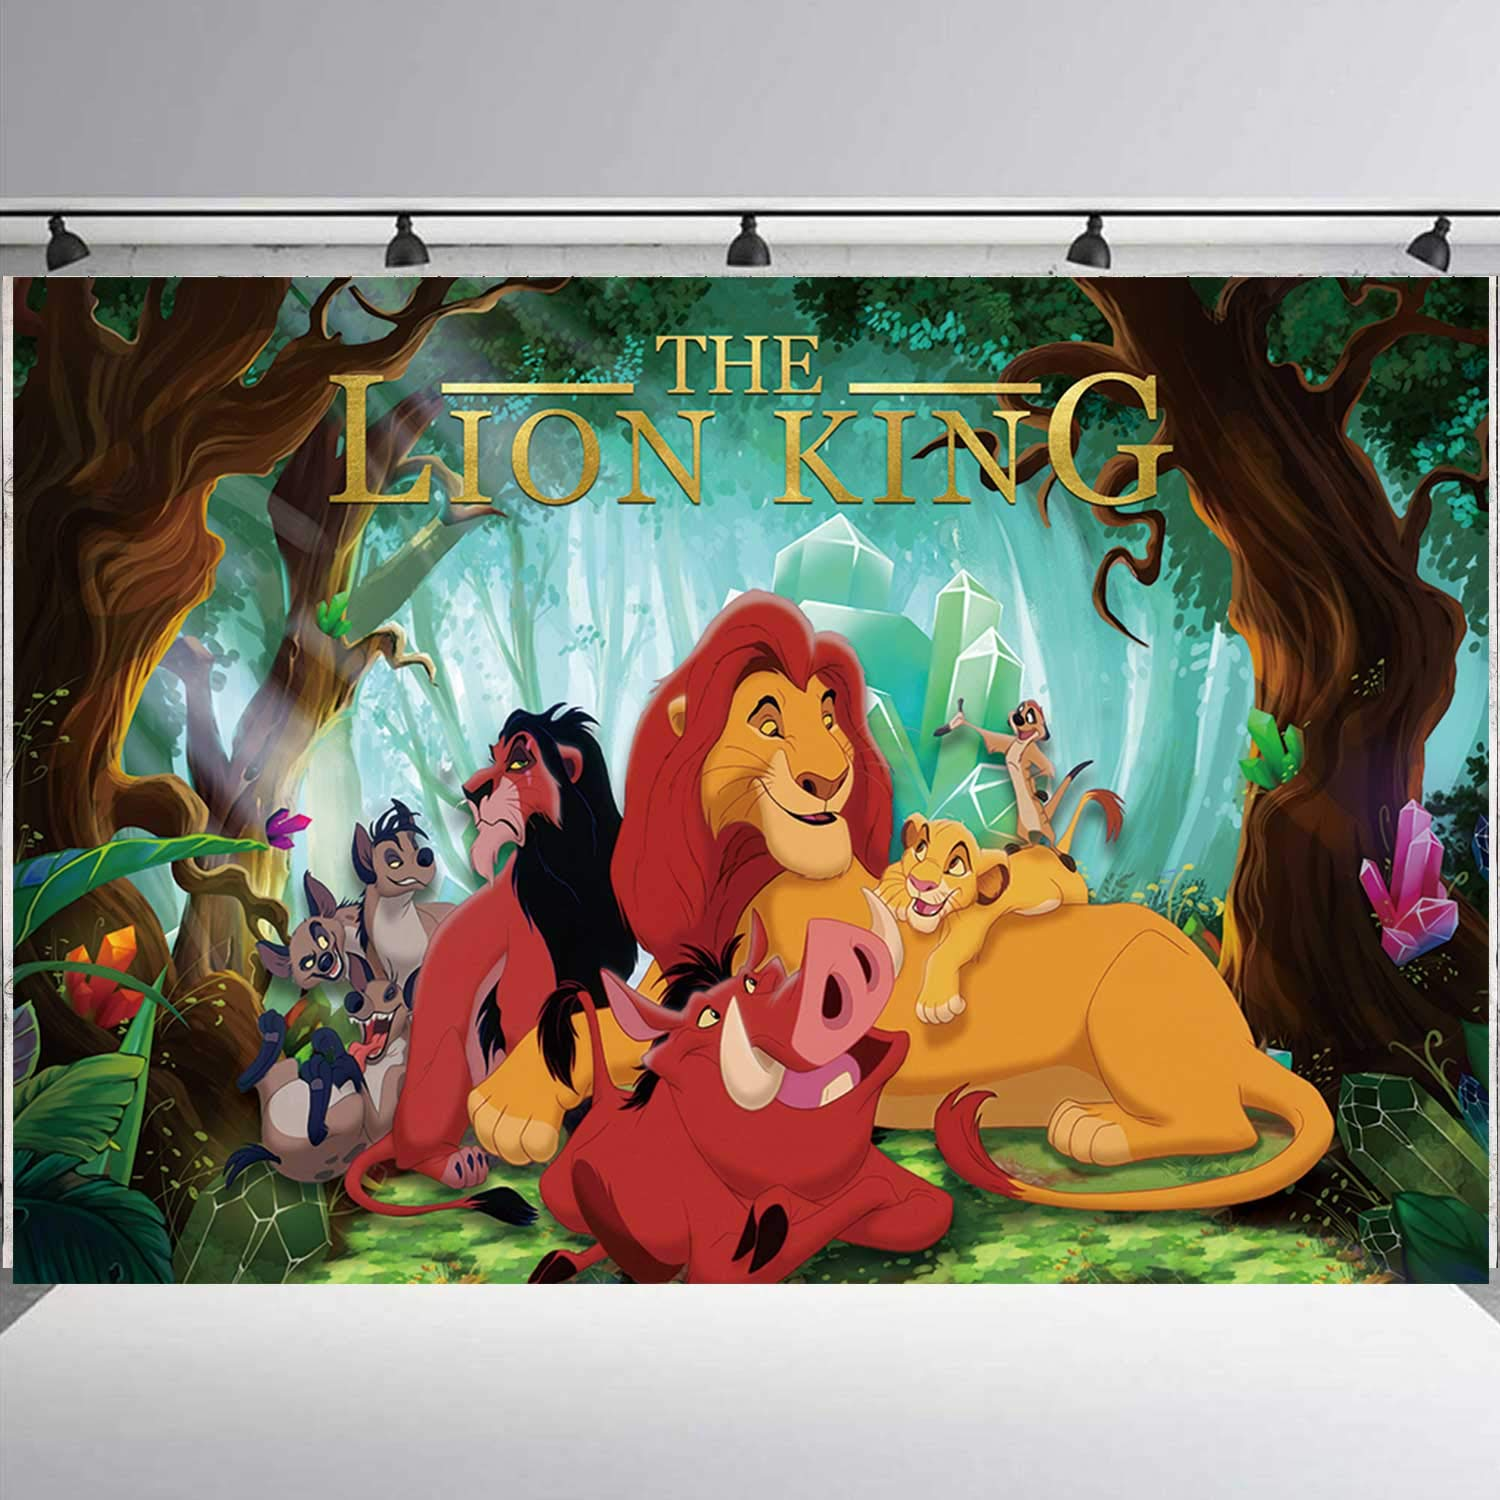 Lion King Backdrop, Jungle Safari Photography Backdrop Background for Photographic Kids Children Party Studio Photo Backdrop Props